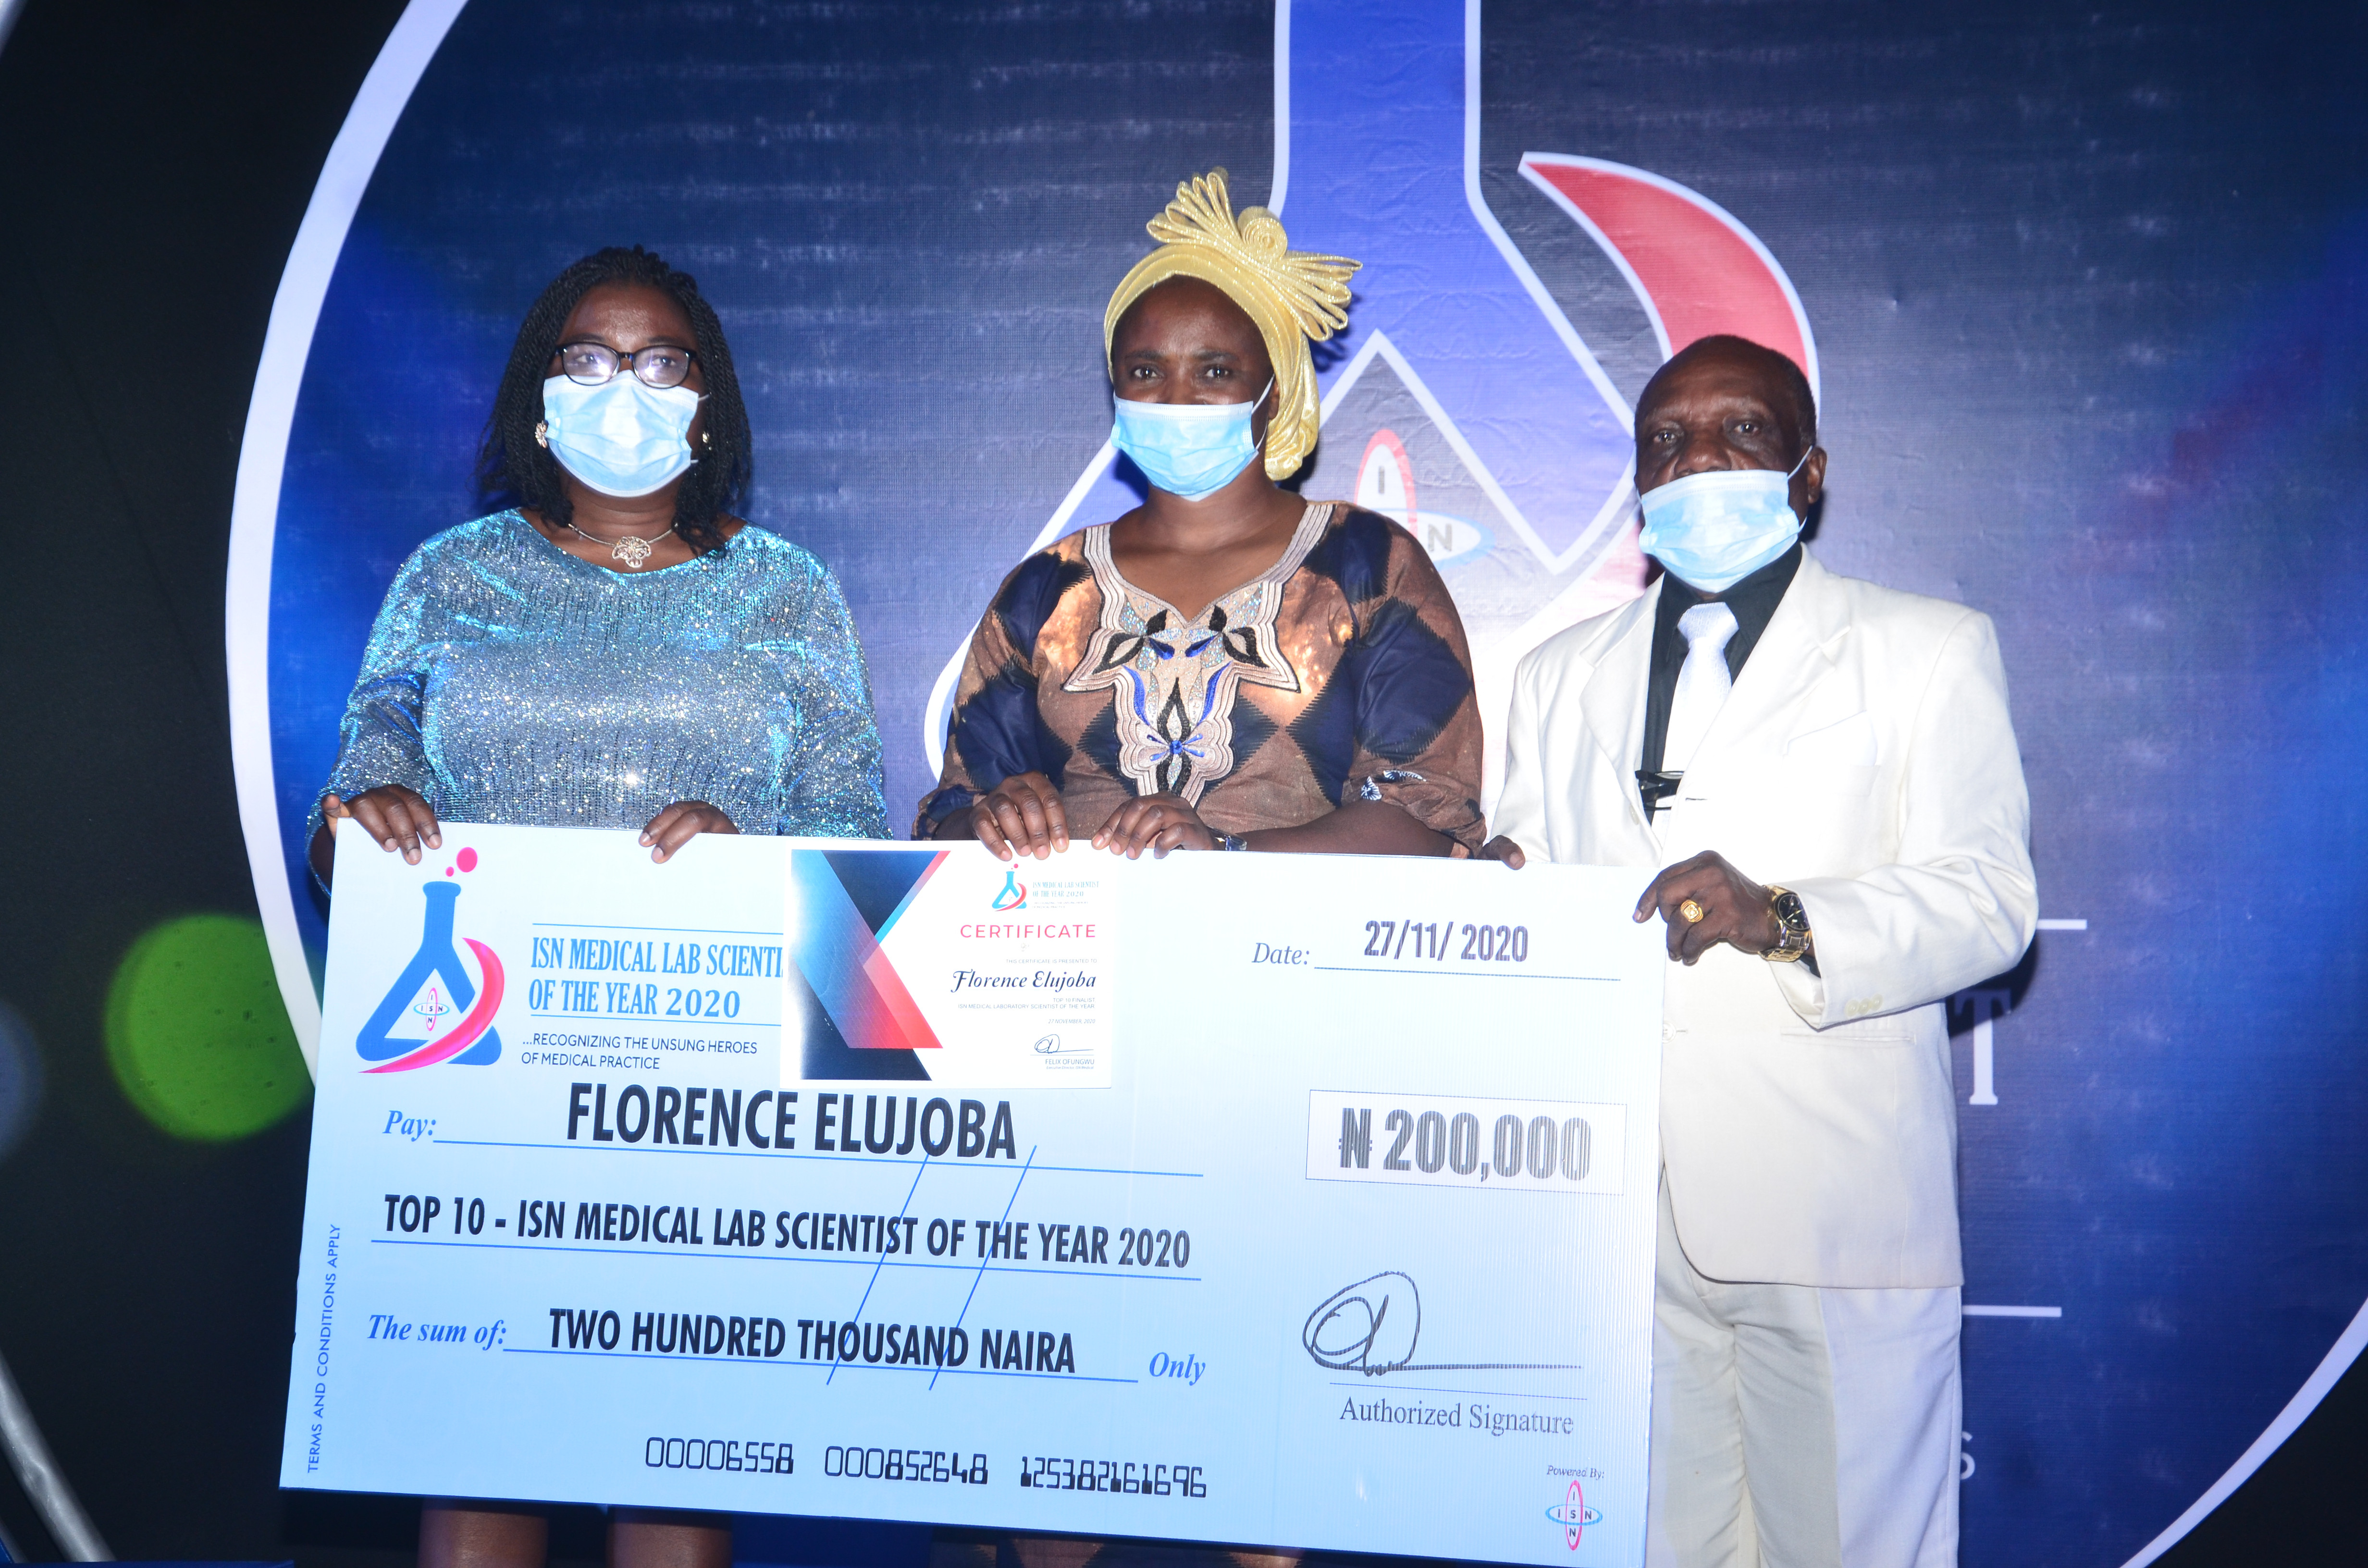 ISN Award as Morale Booster for Medical Laboratory Scientists